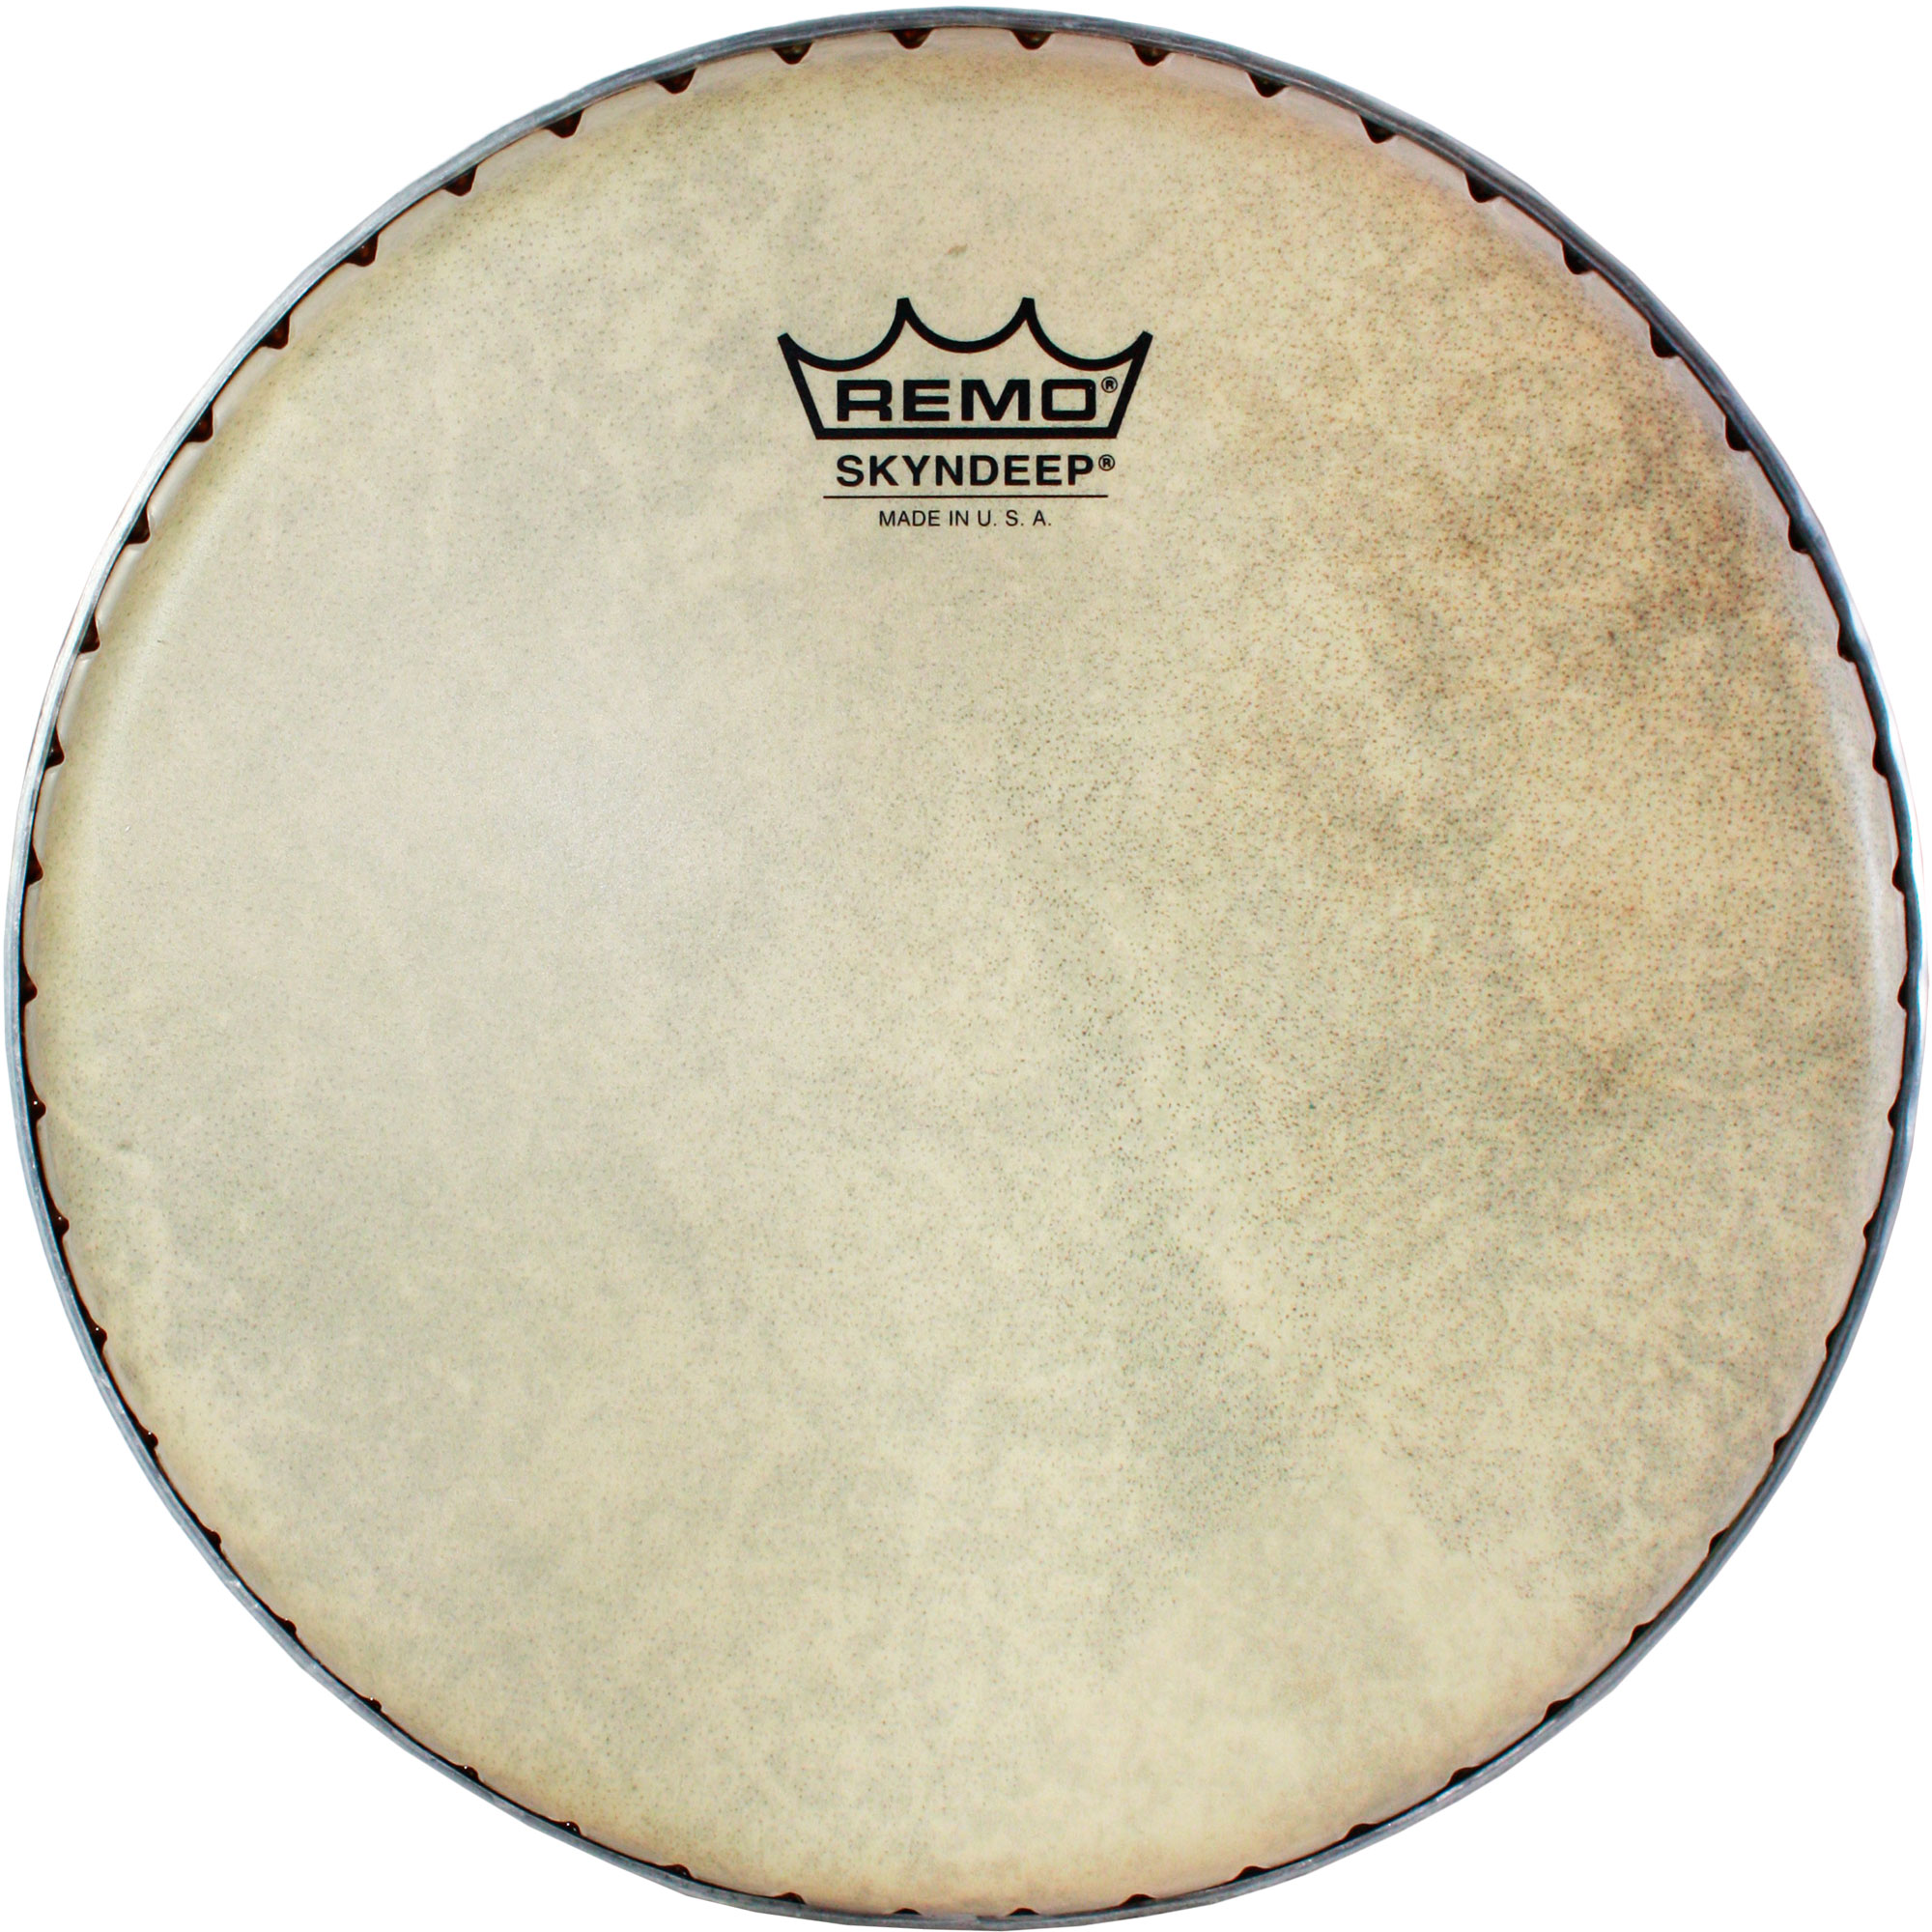 """Remo 9.75"""" Symmetry Skyndeep Conga Drum Head (D1 Collar) with Calfskin Graphic"""